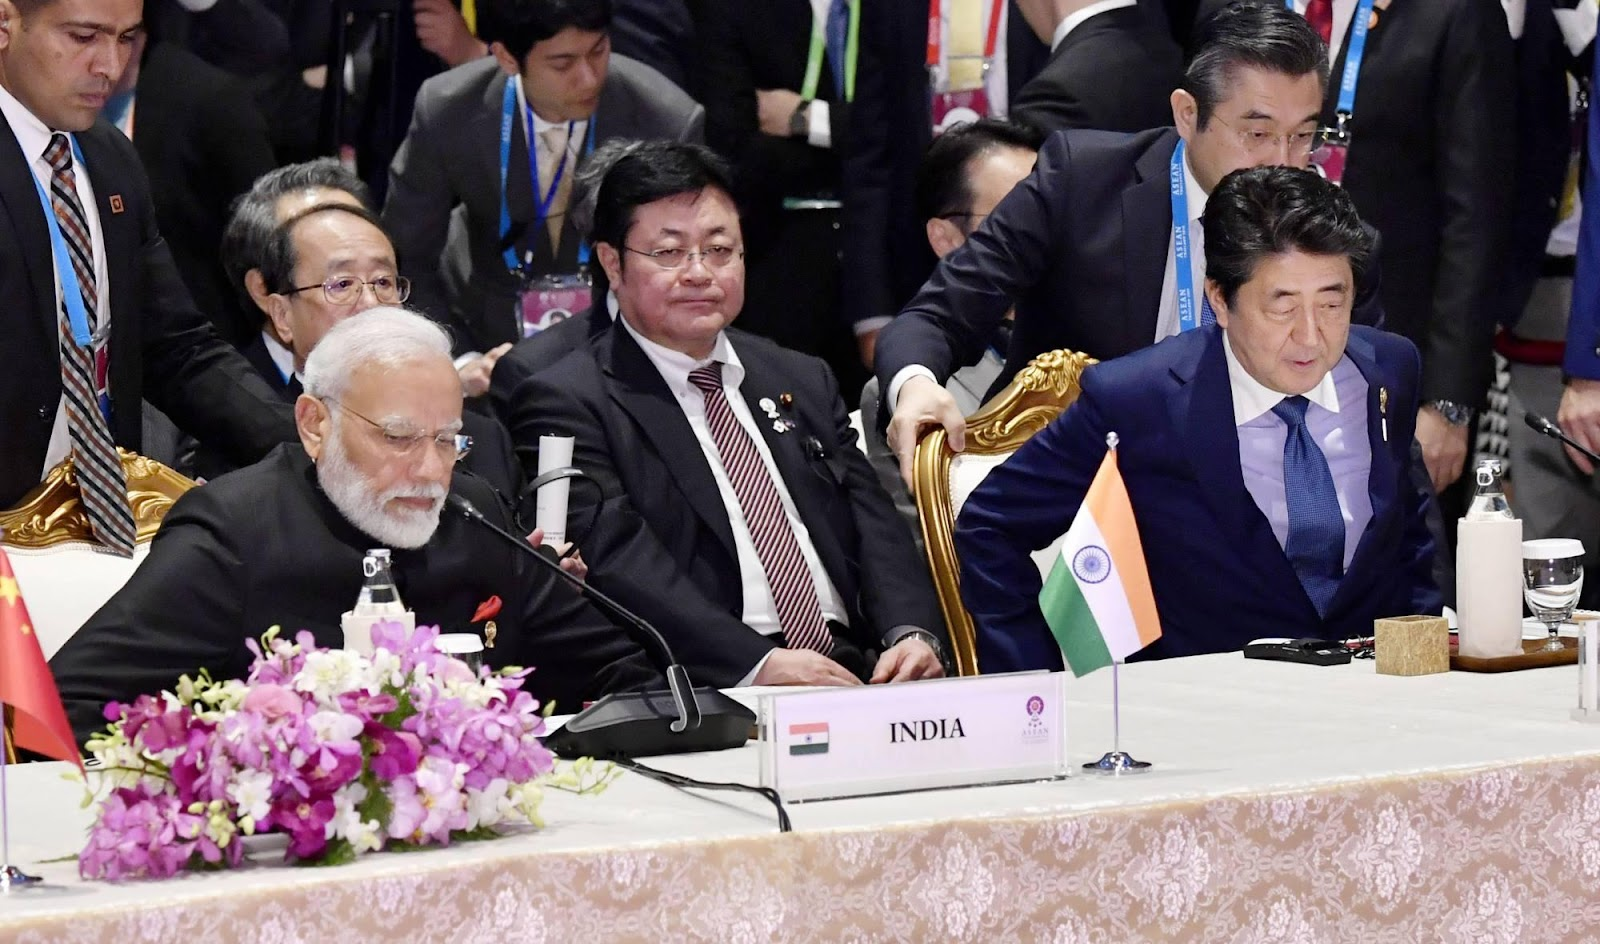 Prime Minister Shinzo Abe and his Indian counterpart Narendra Modi attend a regional summit on the outskirts of Bangkok in November 2019. | KYODO